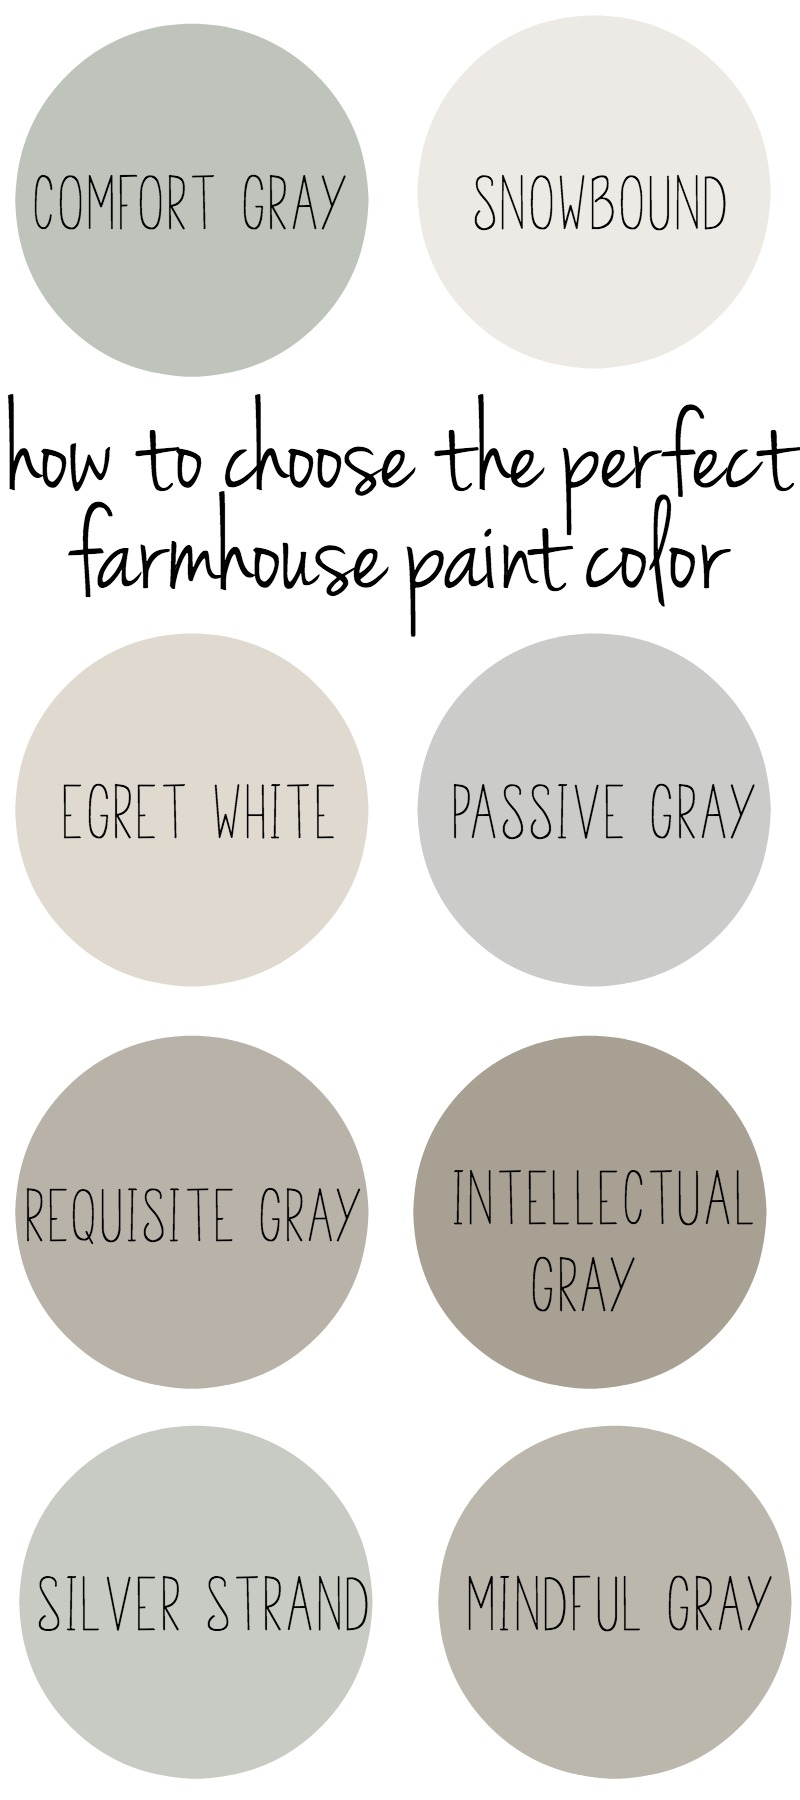 Fanciful How To Choose Farmhouse Style Paint How To Choose Farmhouse Paint Colors Silver Strand Paint Color Sherwin Williams Silver Strand Paint Sw houzz 01 Silver Strand Paint